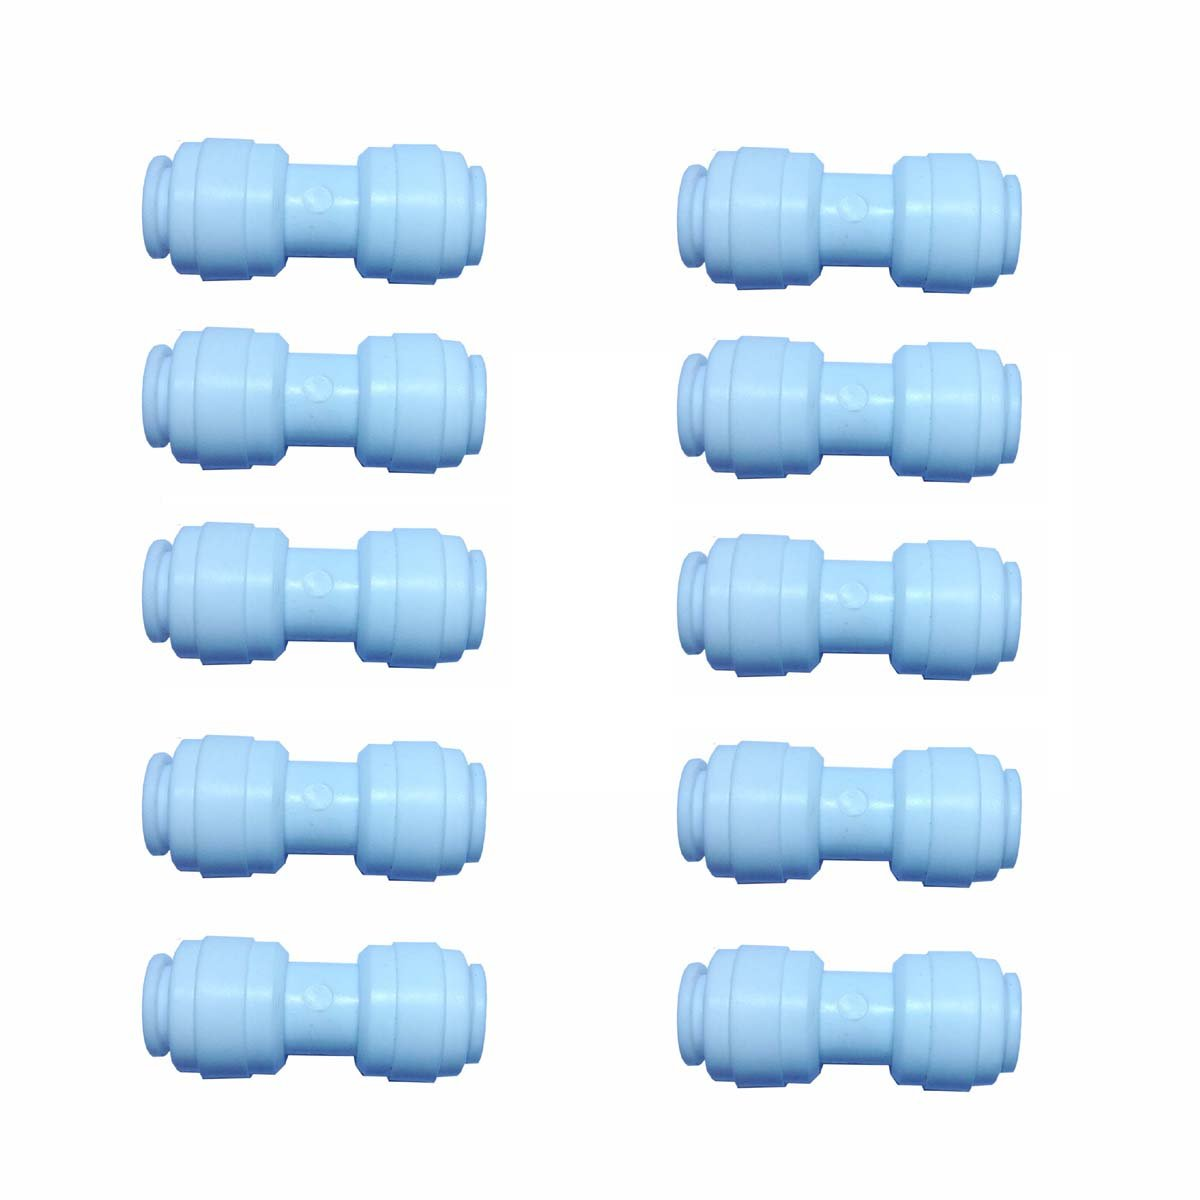 Malida 3//8 Inch to 3//8 Inch Tube OD Water Purifiers Tube Quick Connector Fittings Set of 10 3//8 straight type